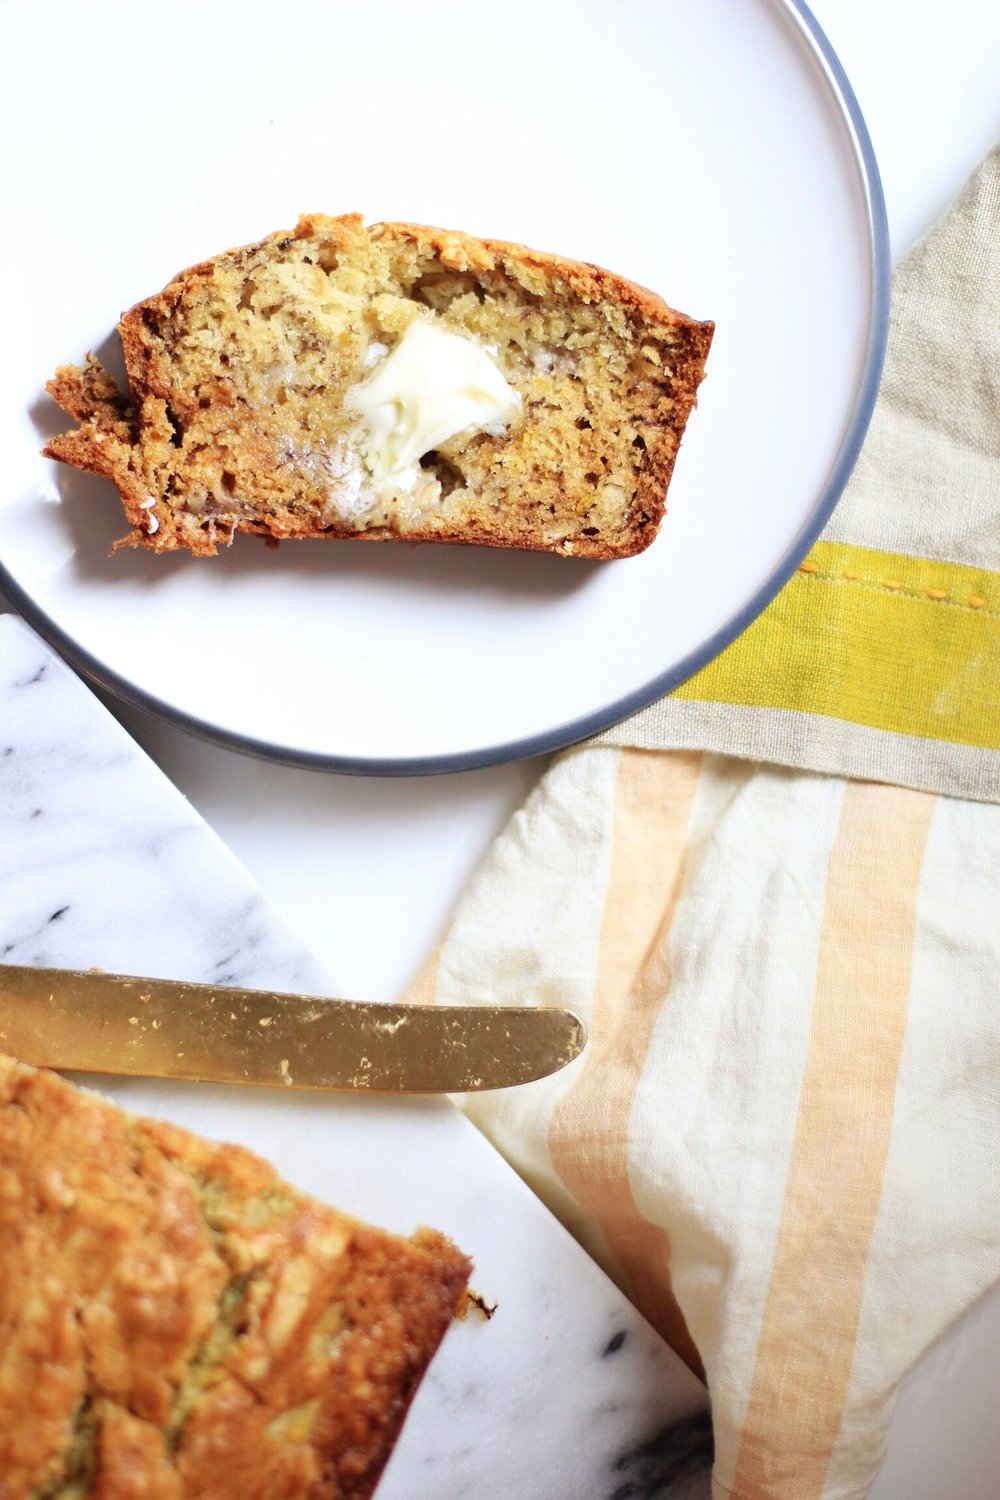 My grandma's classic Banana Bread - The Pastiche